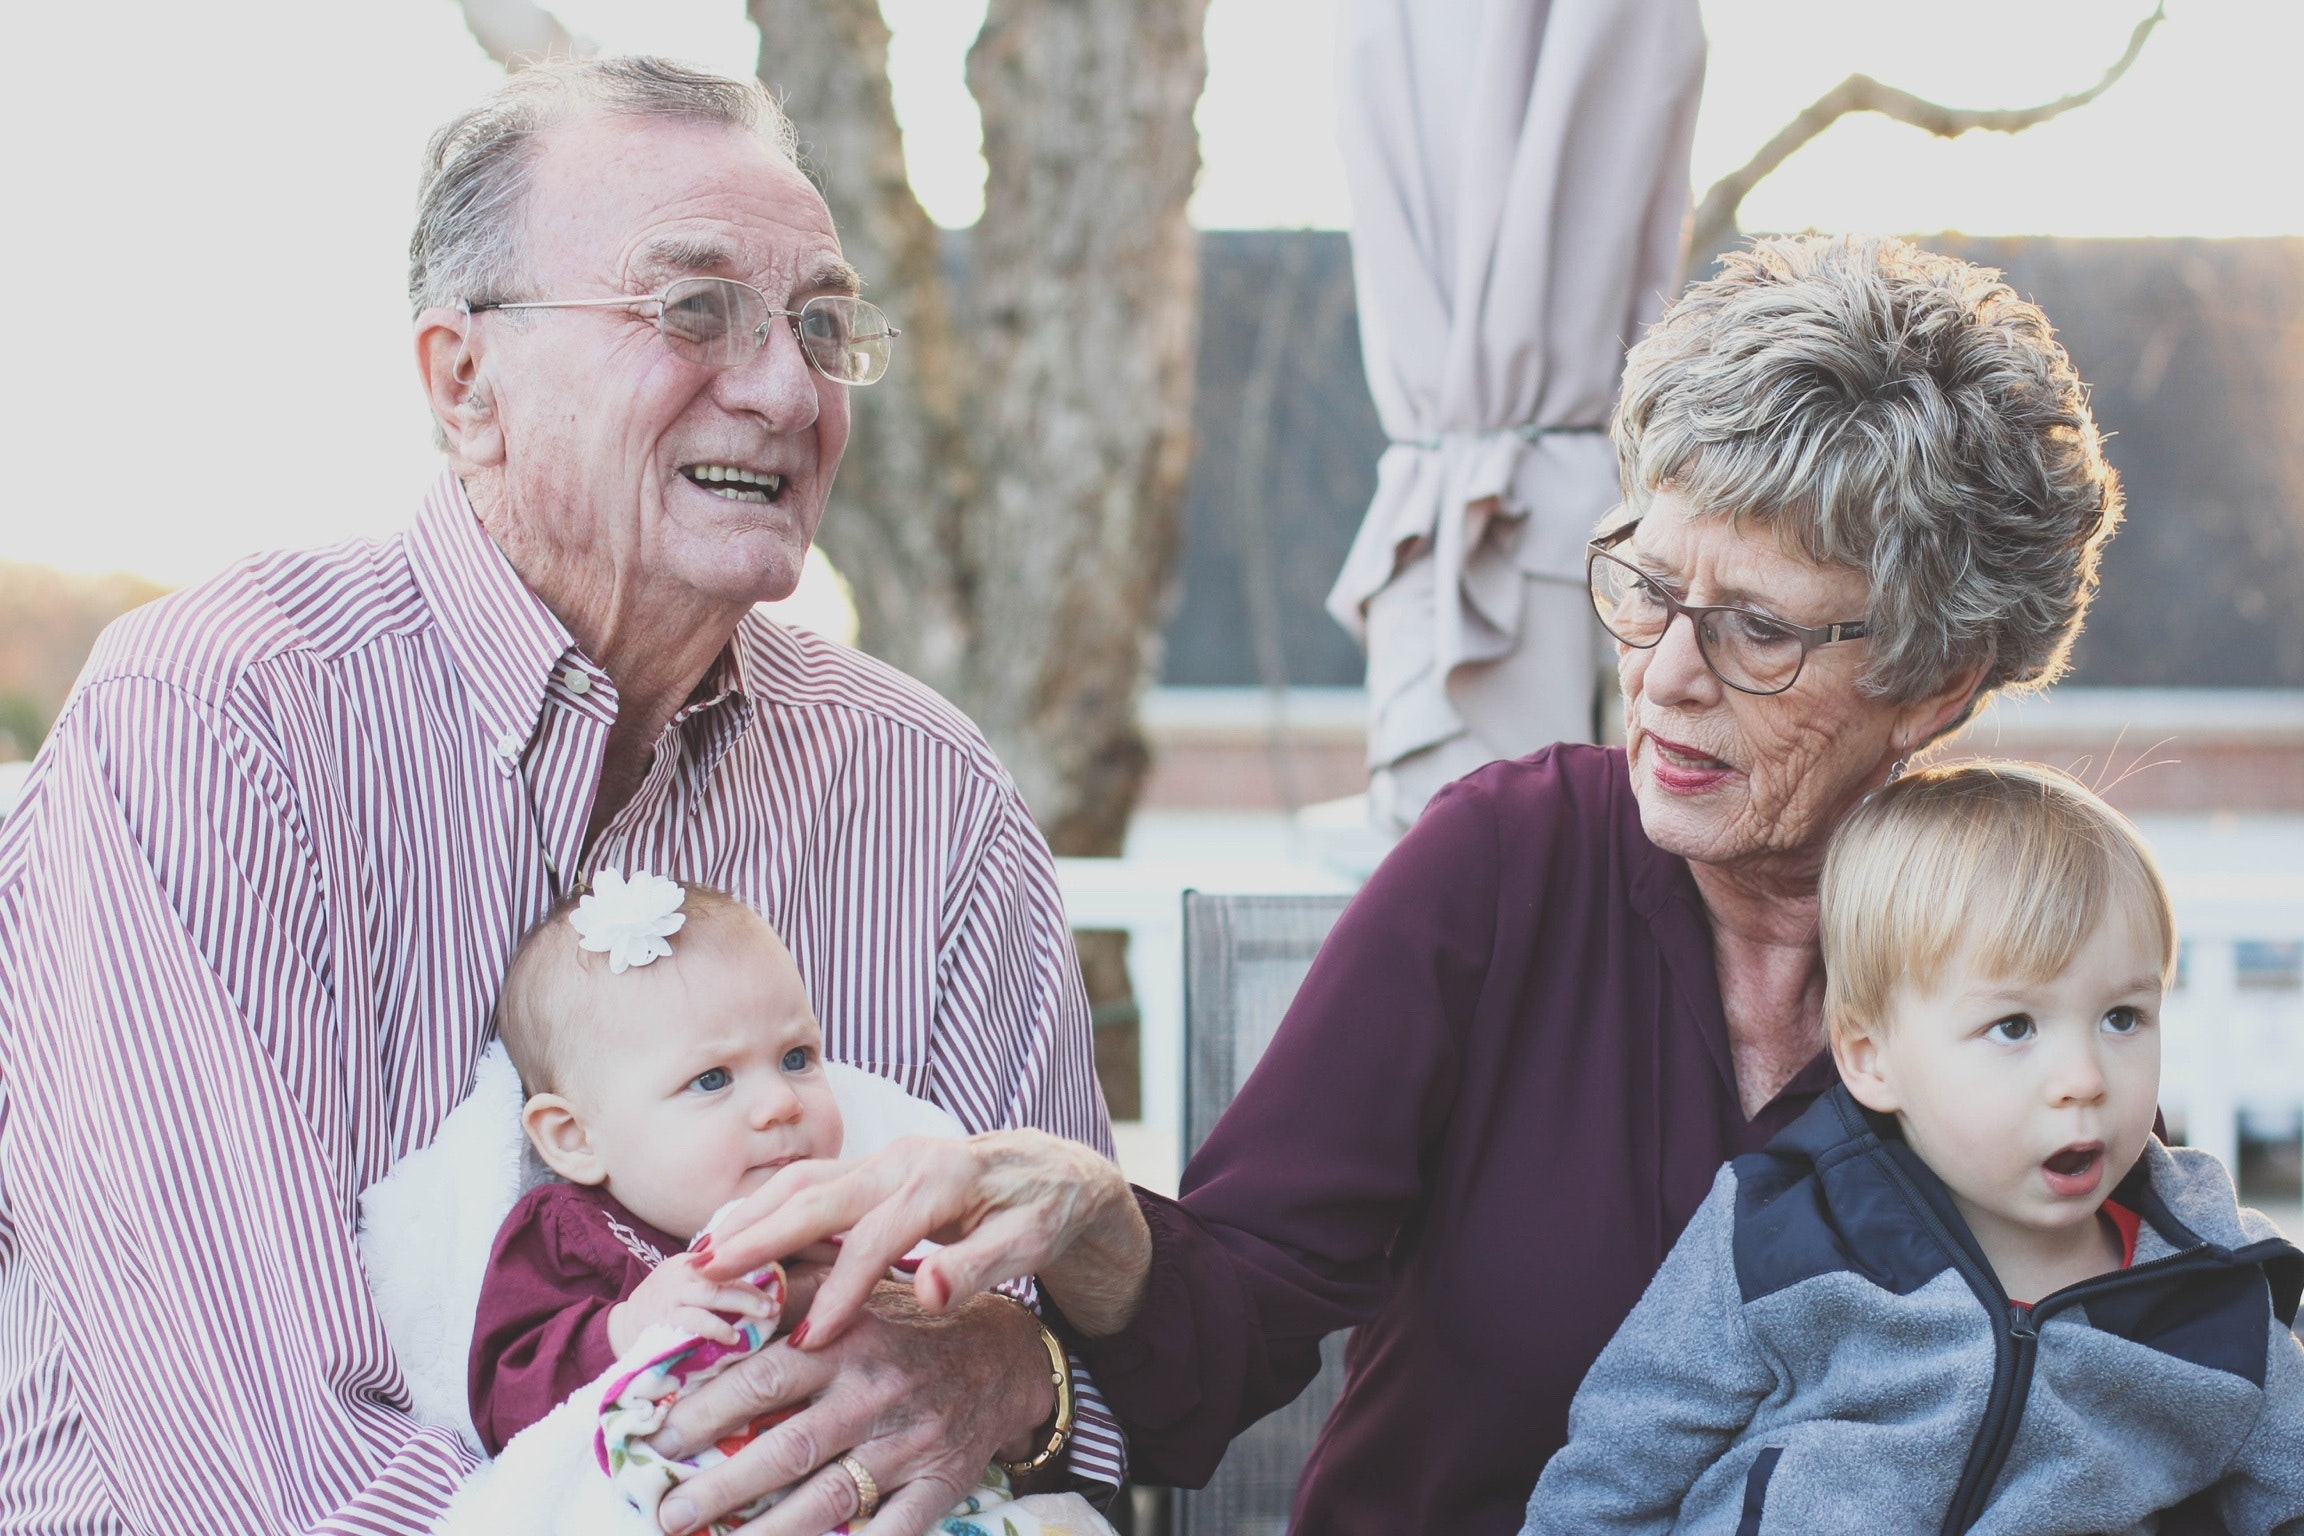 Finding walking aids for elderly loved ones can help them spend time with their family.